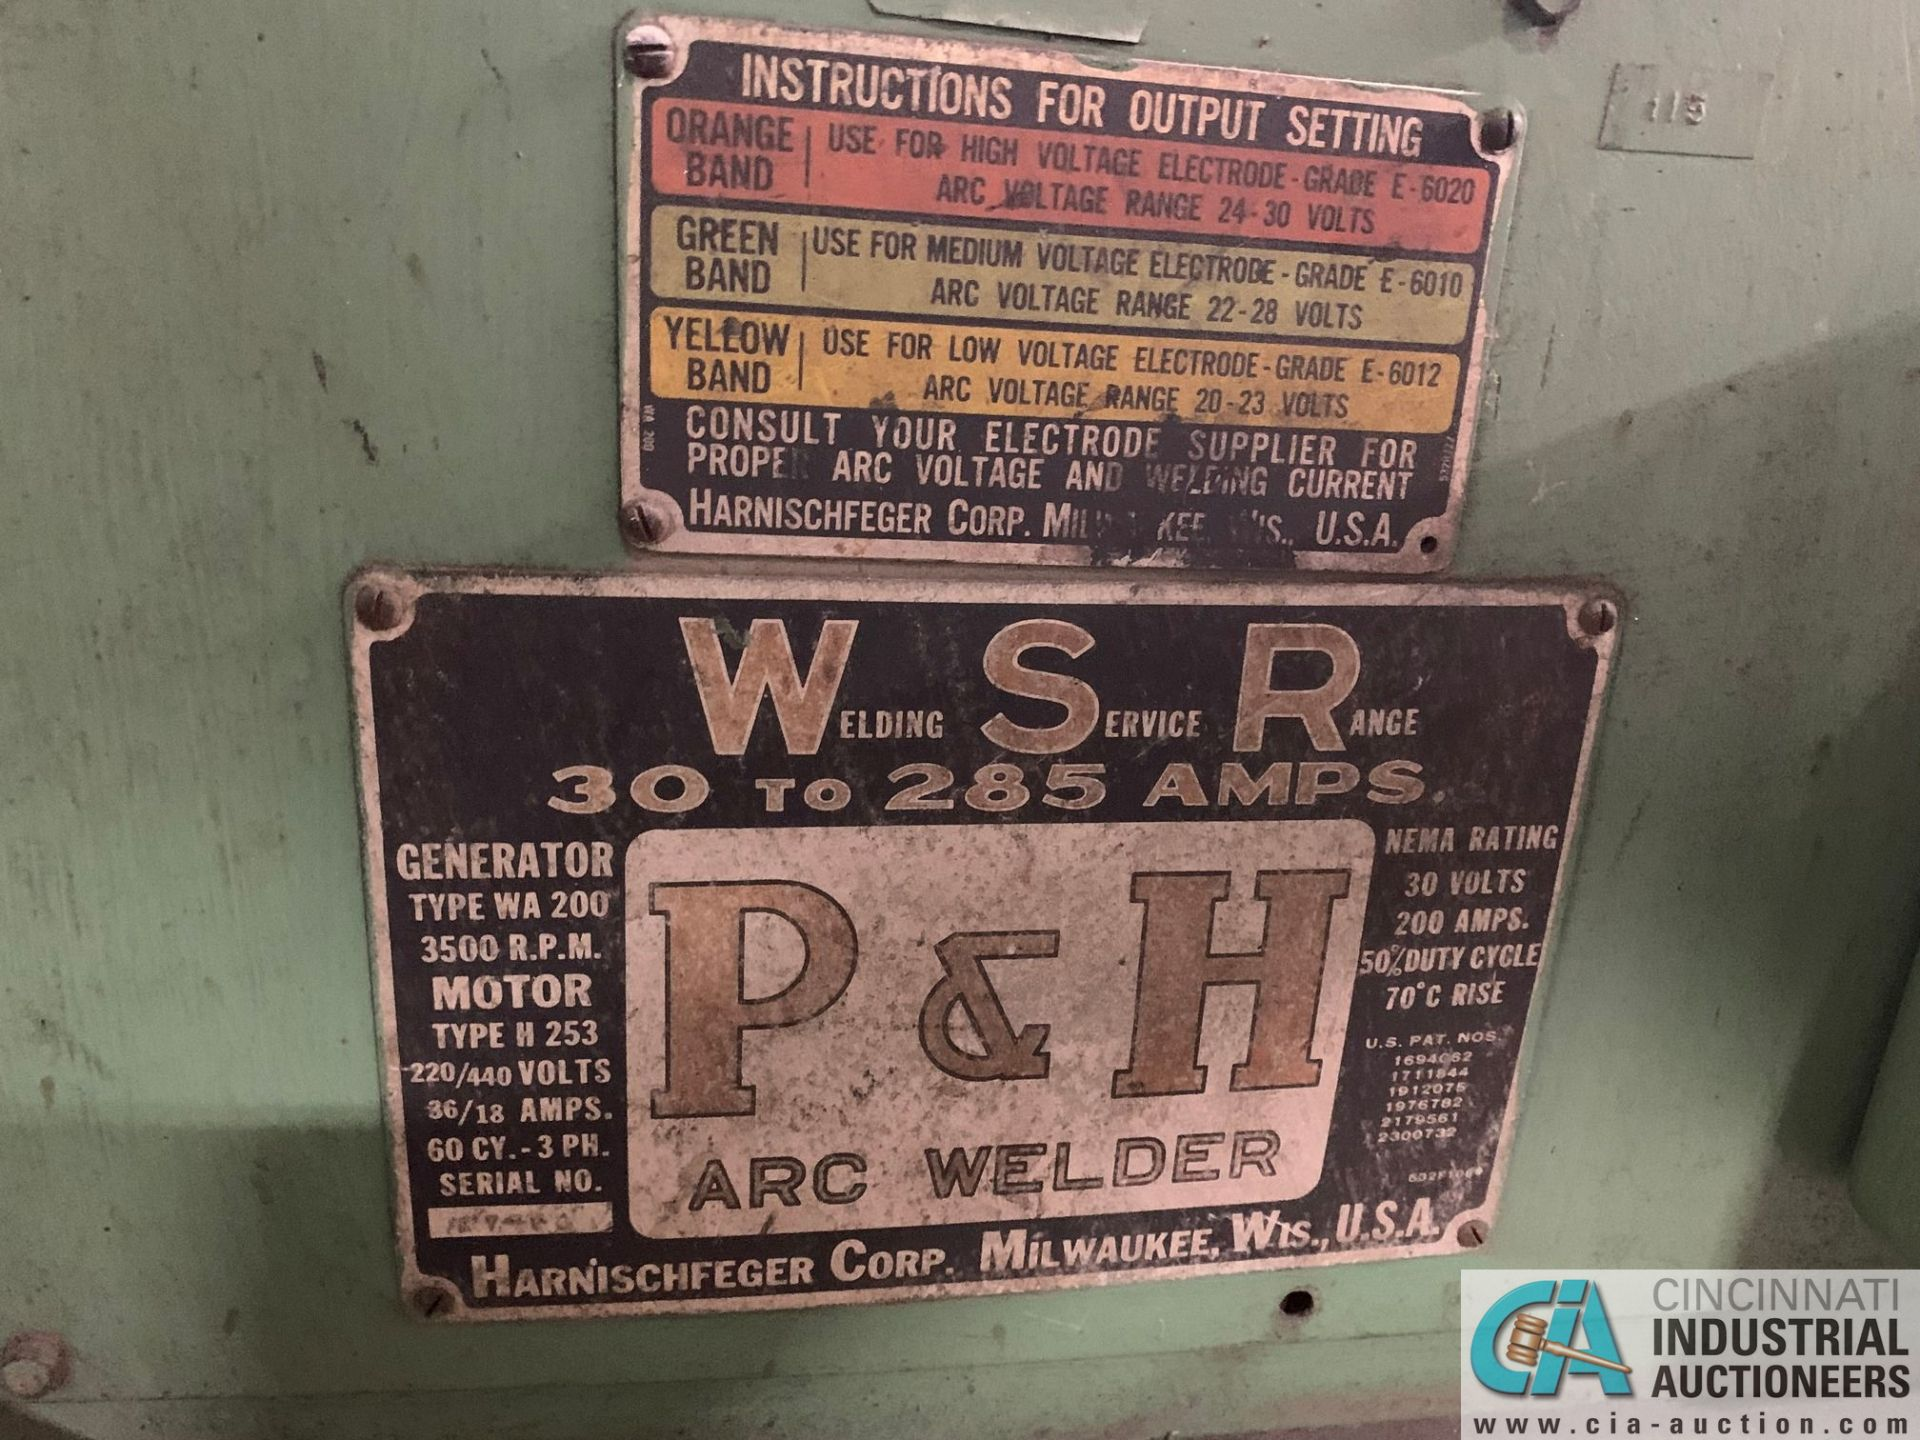 P&H ARC WELDER - Image 2 of 2